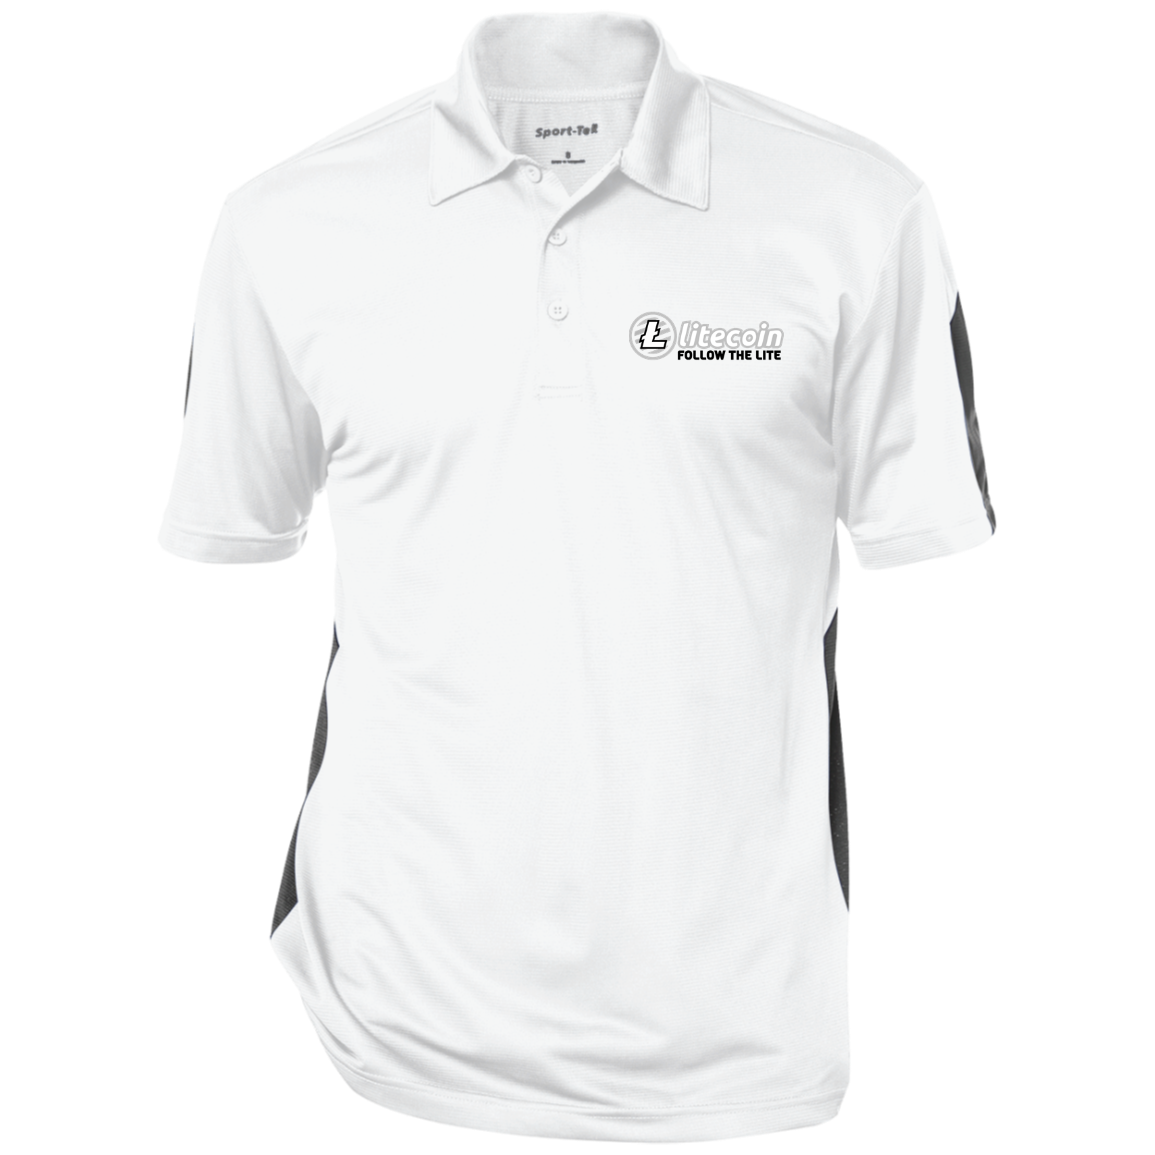 Litecoin Follow The Lite – Embroidered Performance Polo by Sport-Tek